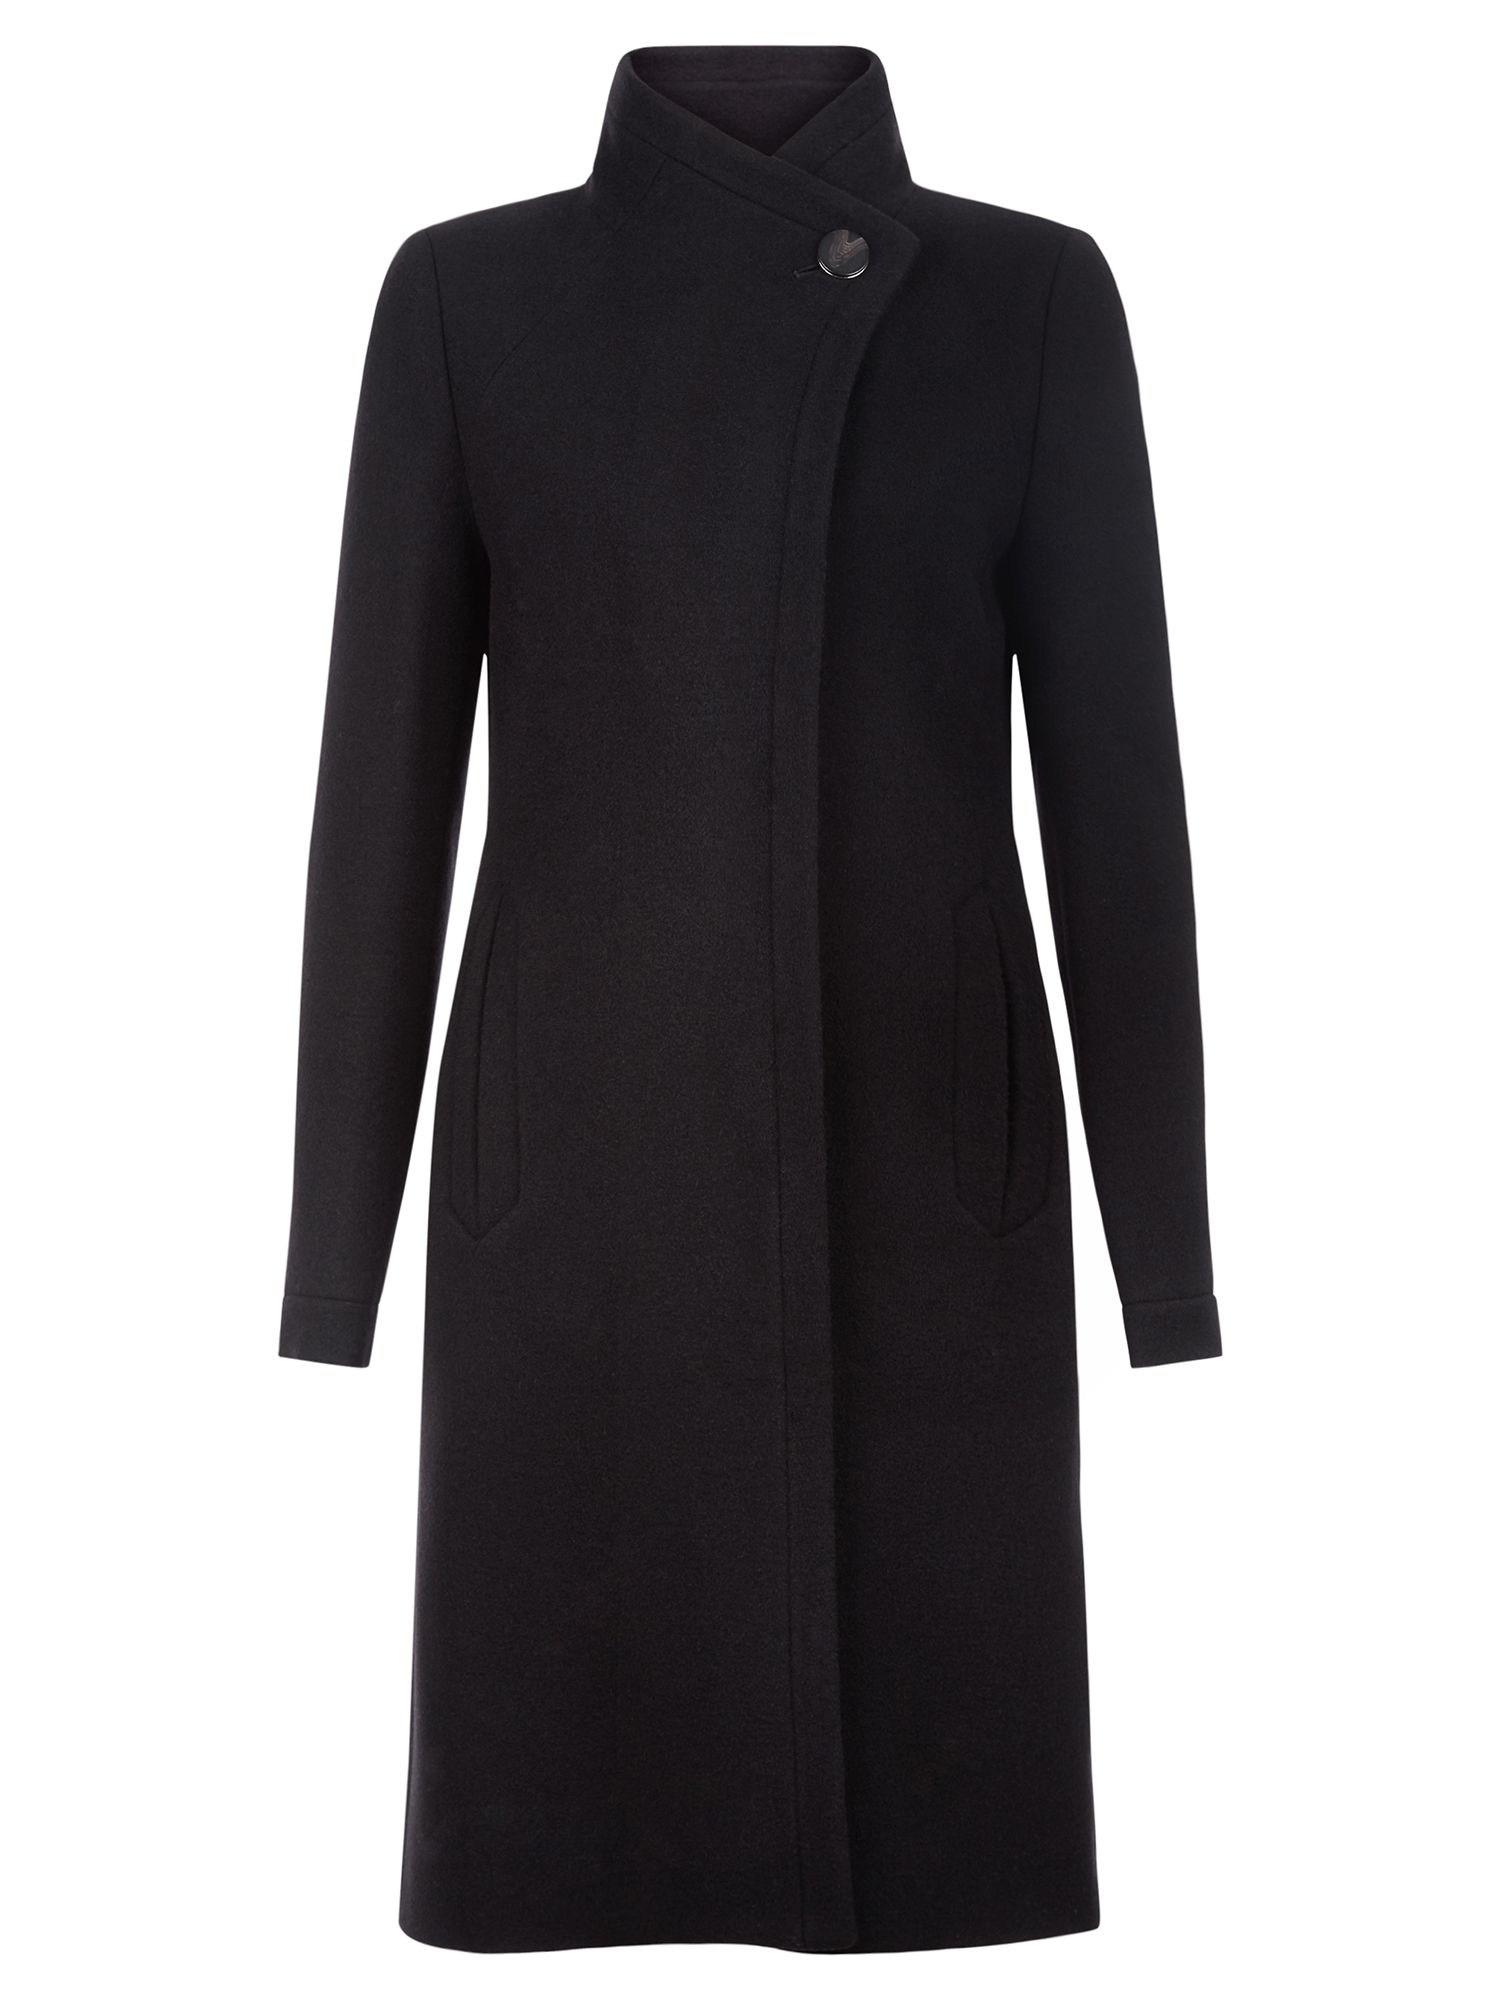 Hobbs Soraya Coat, Black